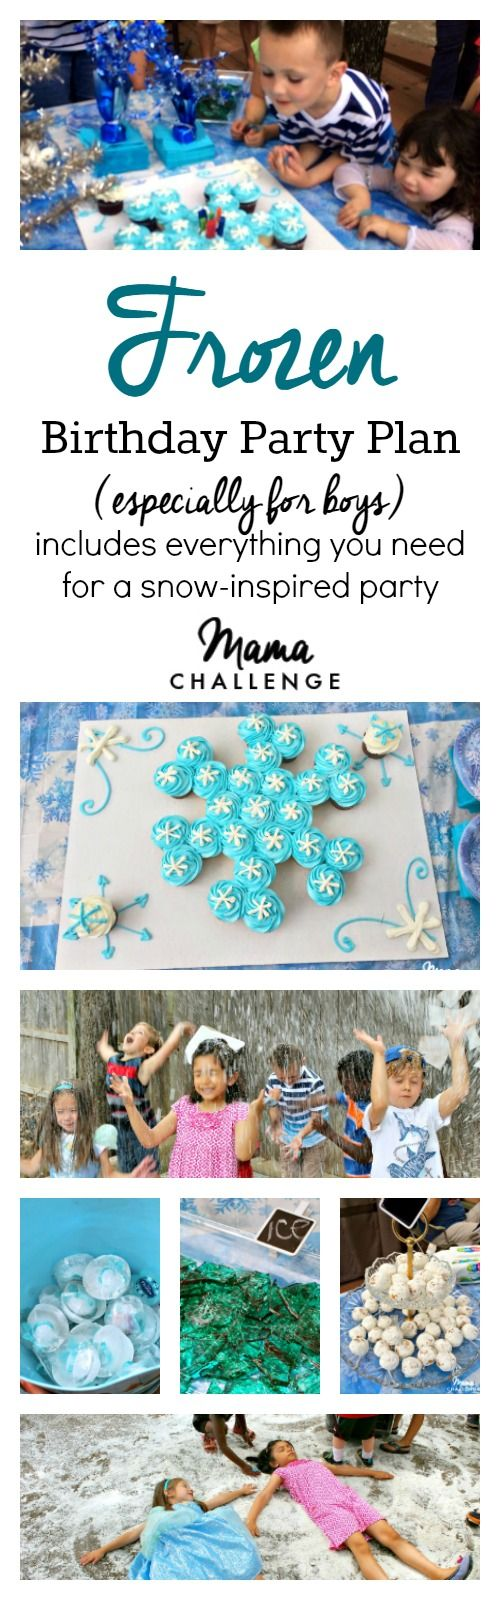 Whether you have an Anna, Elsa, Sven or Olaf, these are the coolest ideas for your Frozen Birthday Party (especially for boys!)